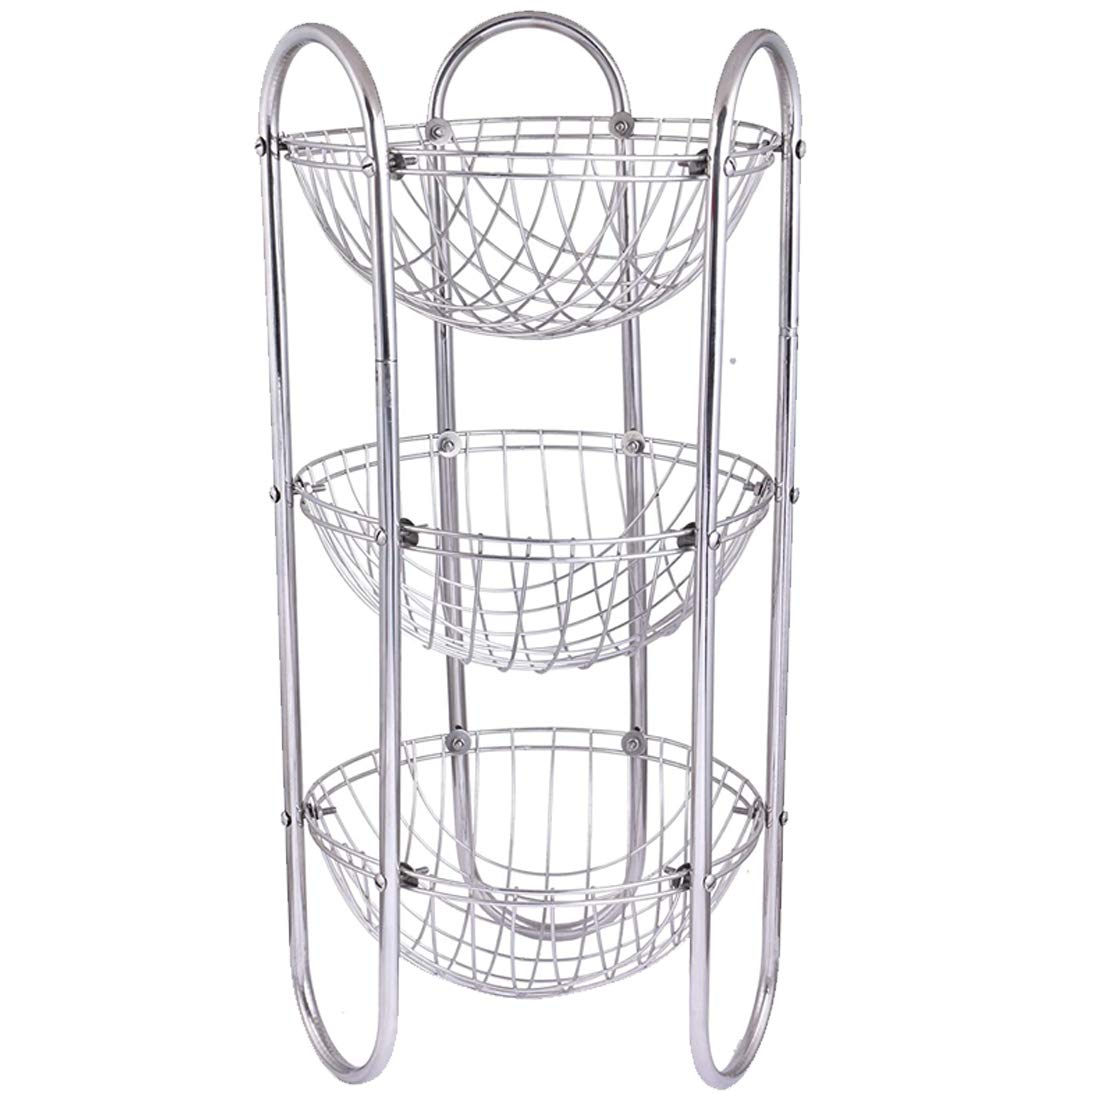 Oc9 Stainless Steel Fruits and Vegetables Round Trolley/Basket/Rack/Stand 3 Shelf Silver